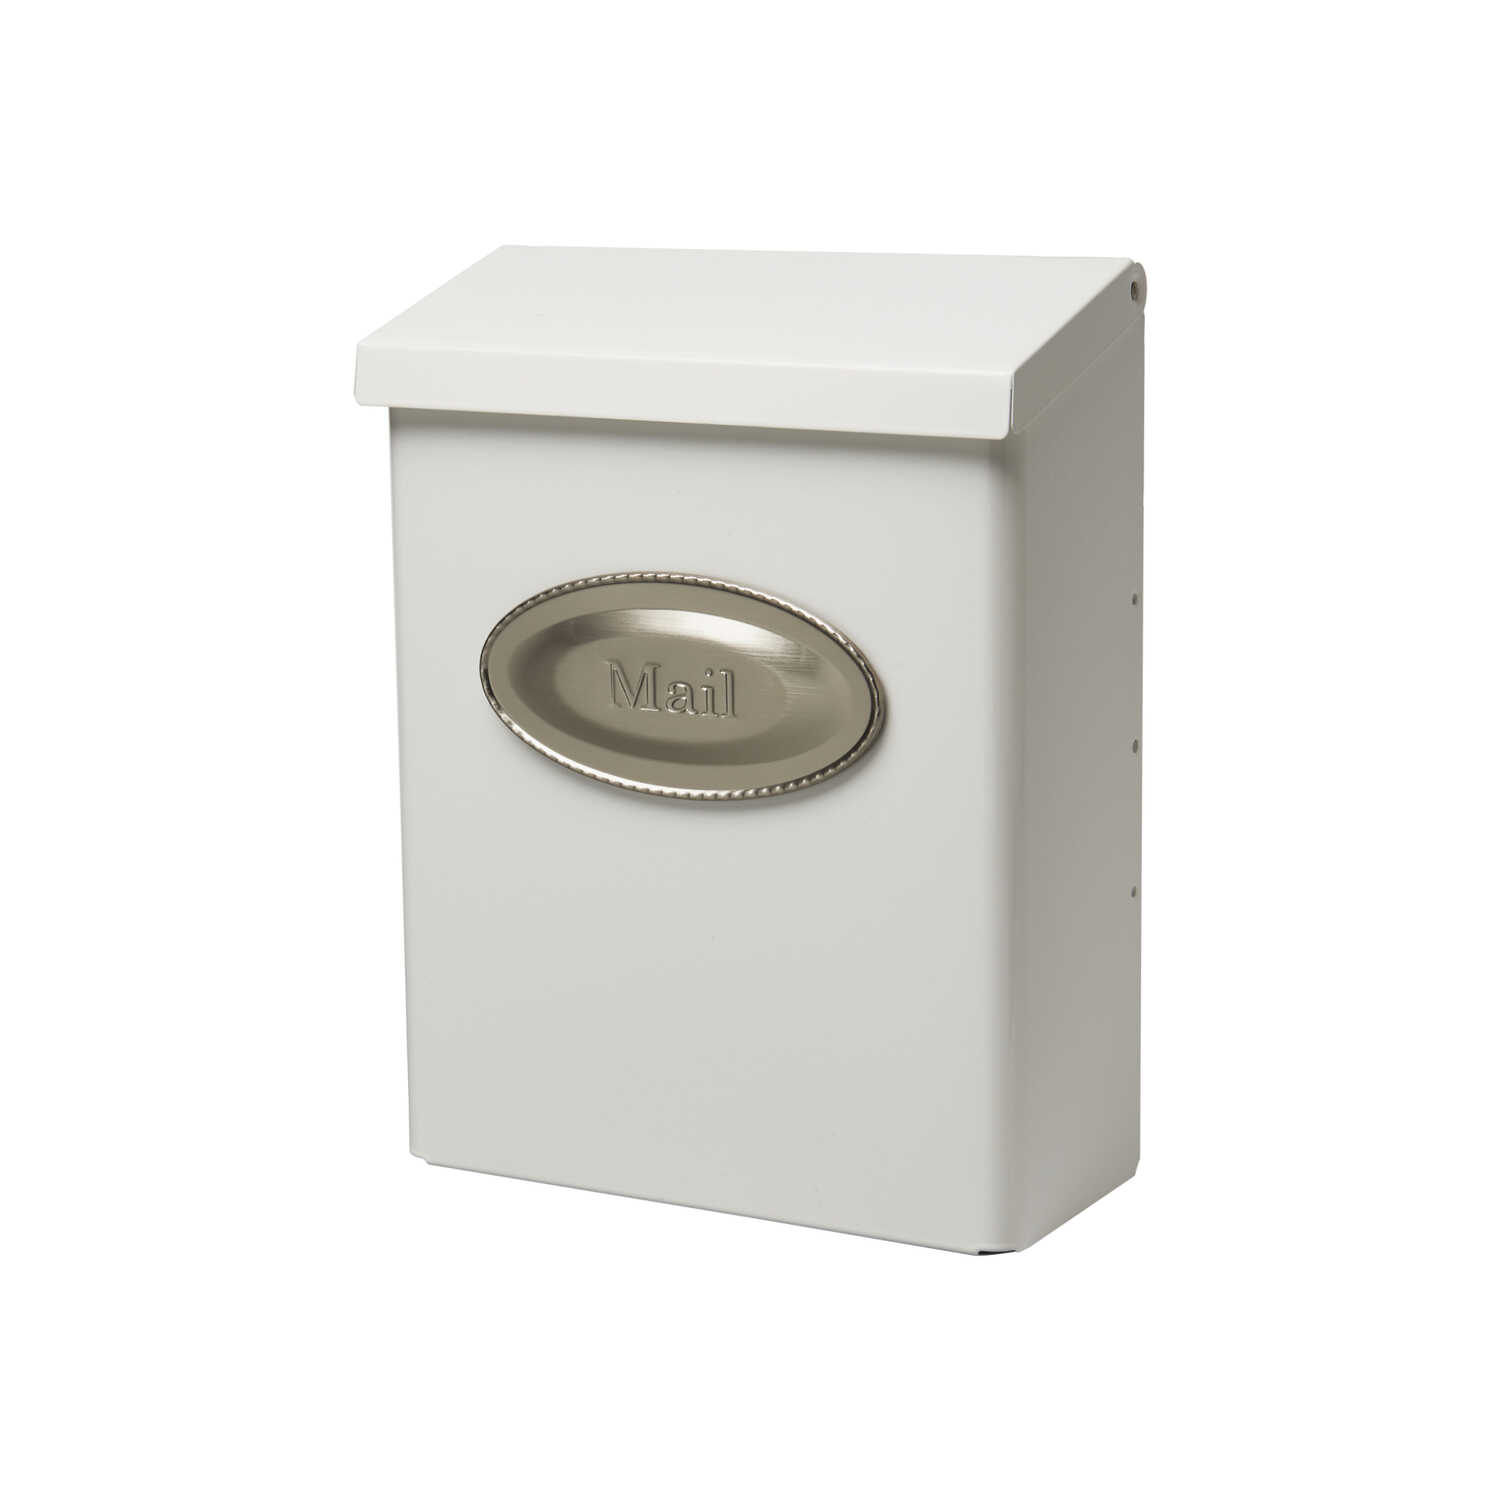 Gibraltar Mailboxes  Designer  Galvanized Steel  Wall-Mounted  White  Lockable Mailbox  12-1/2 in. H